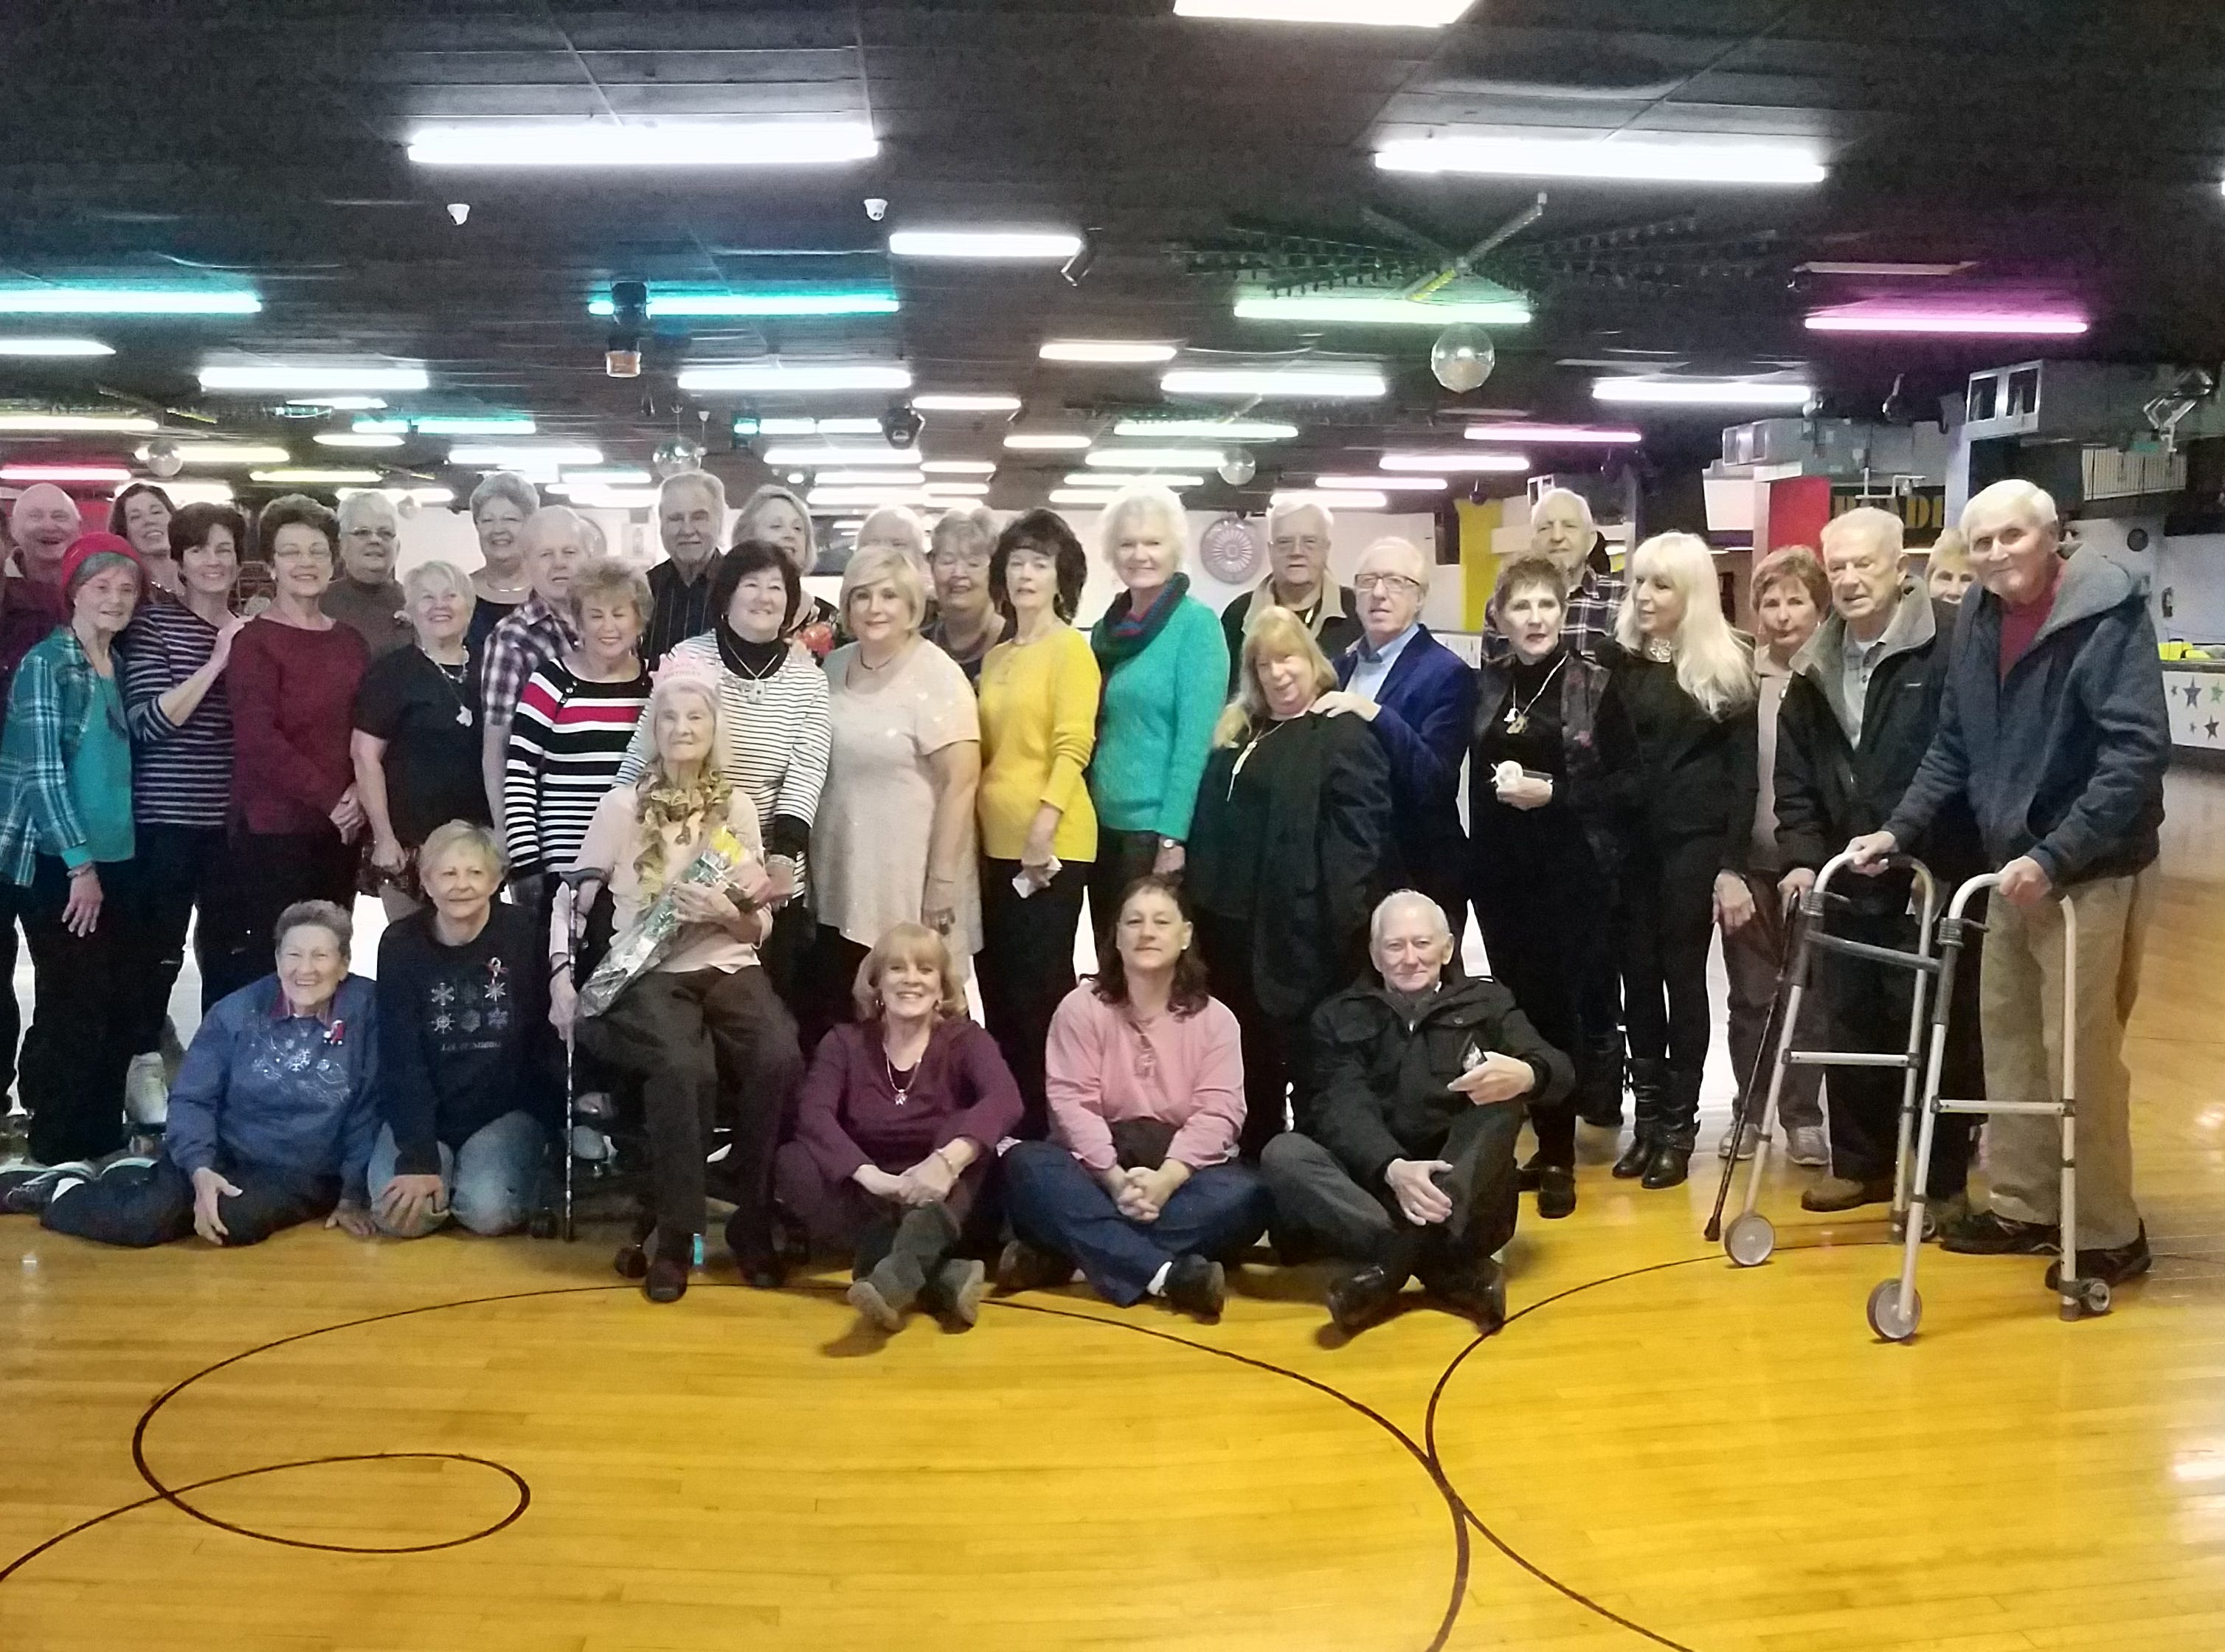 Carrie Callandrullo (center) celebrated her 100th birthday Nov. 14 with her friends at the skating rink. At least twice a week, more than 20 seniors regularly gather at South Amboy Arenaand take to the rink for a couple hours of roller skating. They range in age from 55 to 100.